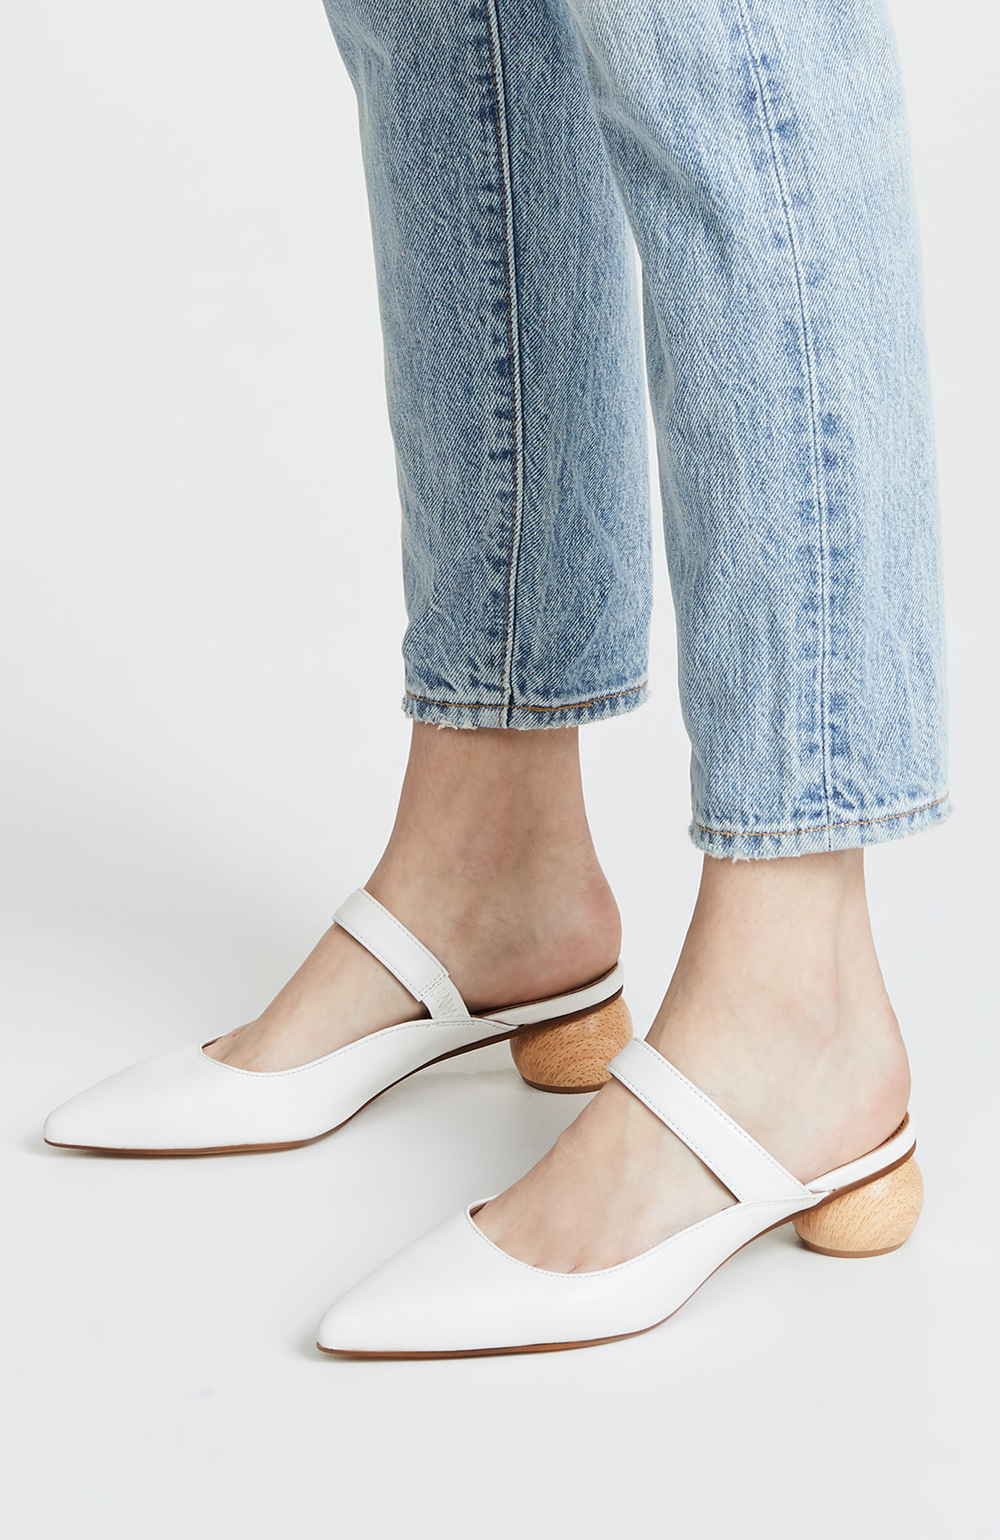 3-white-mules-with-wooden-heel.png